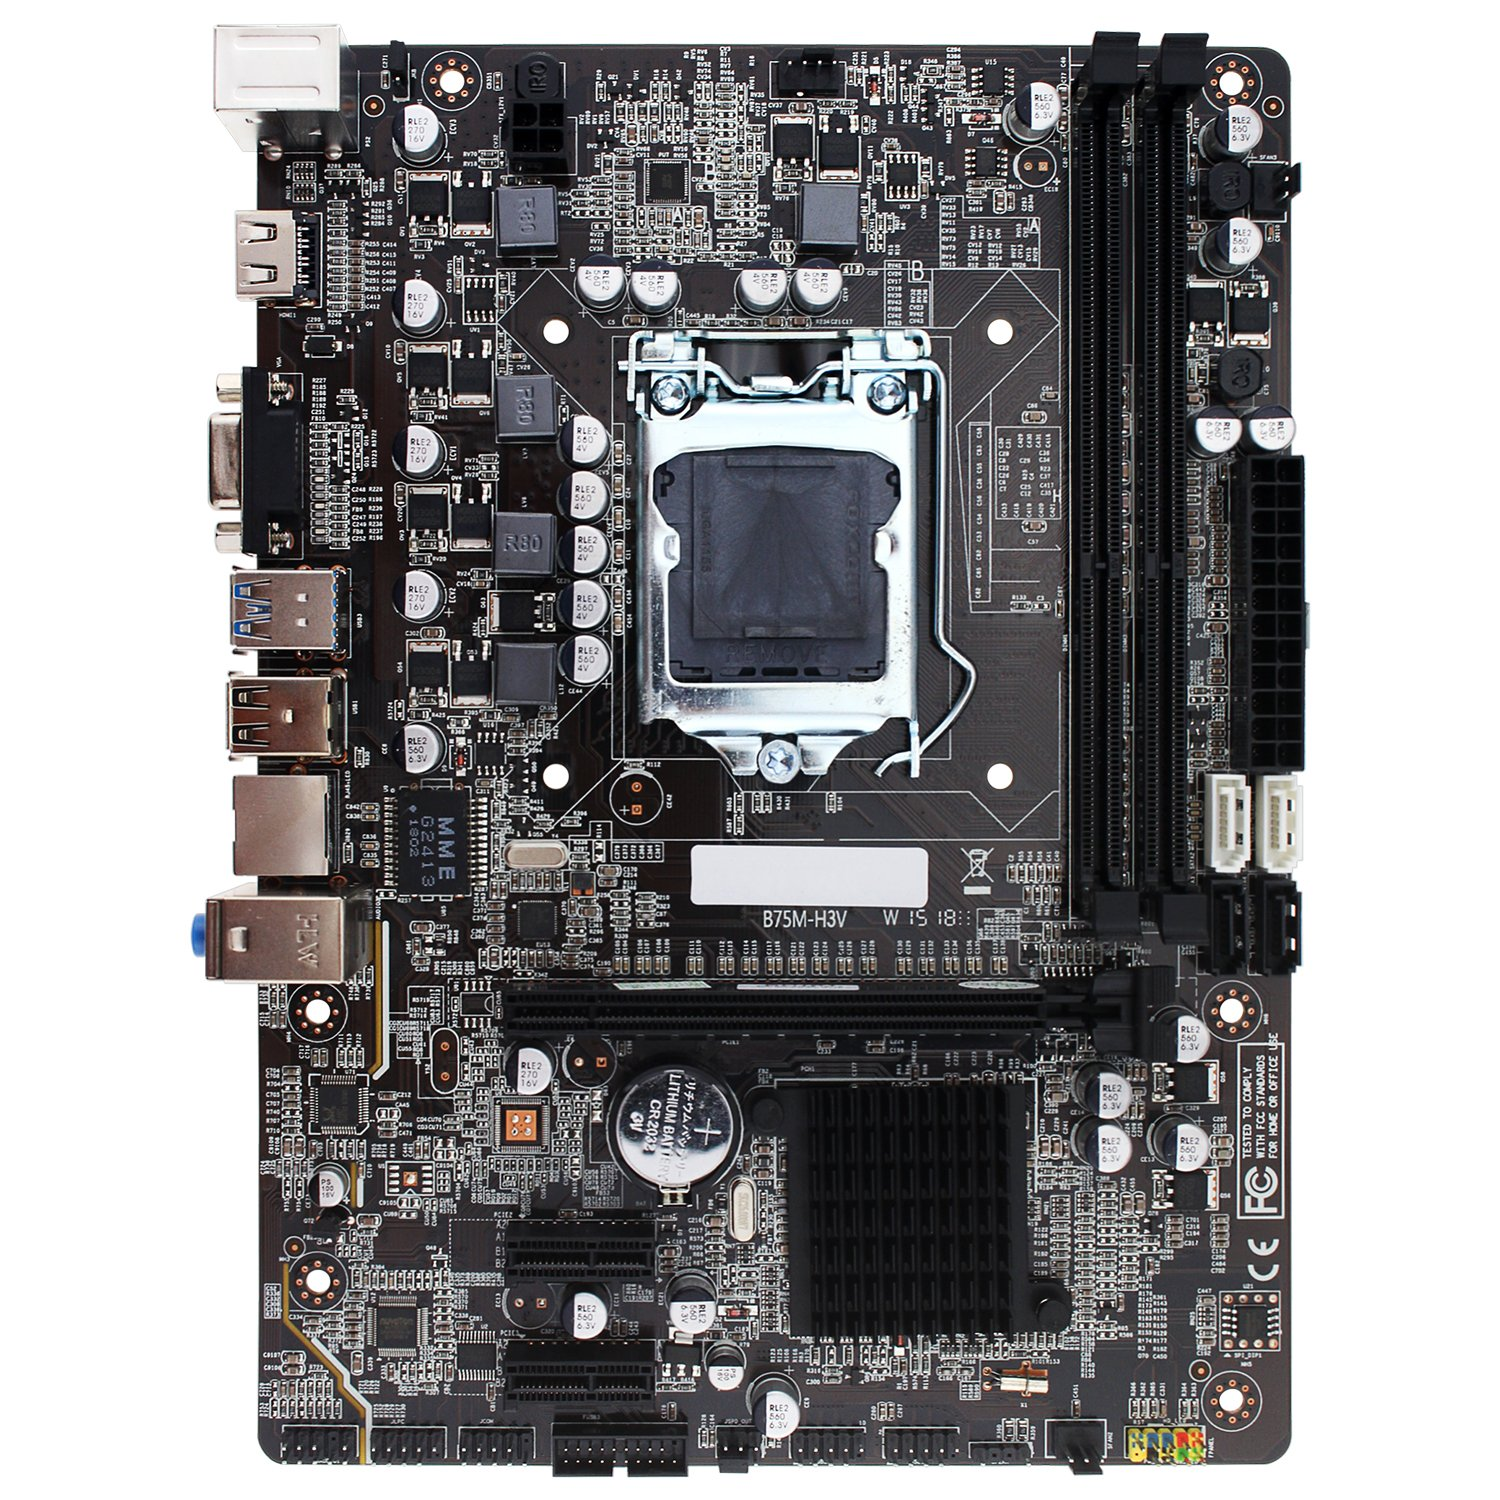 Intel B75 Motherboard Socket LGA1155 Providing 2 x Dual Dimm DDR3(1333) Slots Total Support 16GB RAM, Support Core i3/i5/i7 Gen2 Gen3 Processors DDR3(1333/1600), SATA3.0/USB3.0/VGA/HDMI - Micro ATX by Sofobod